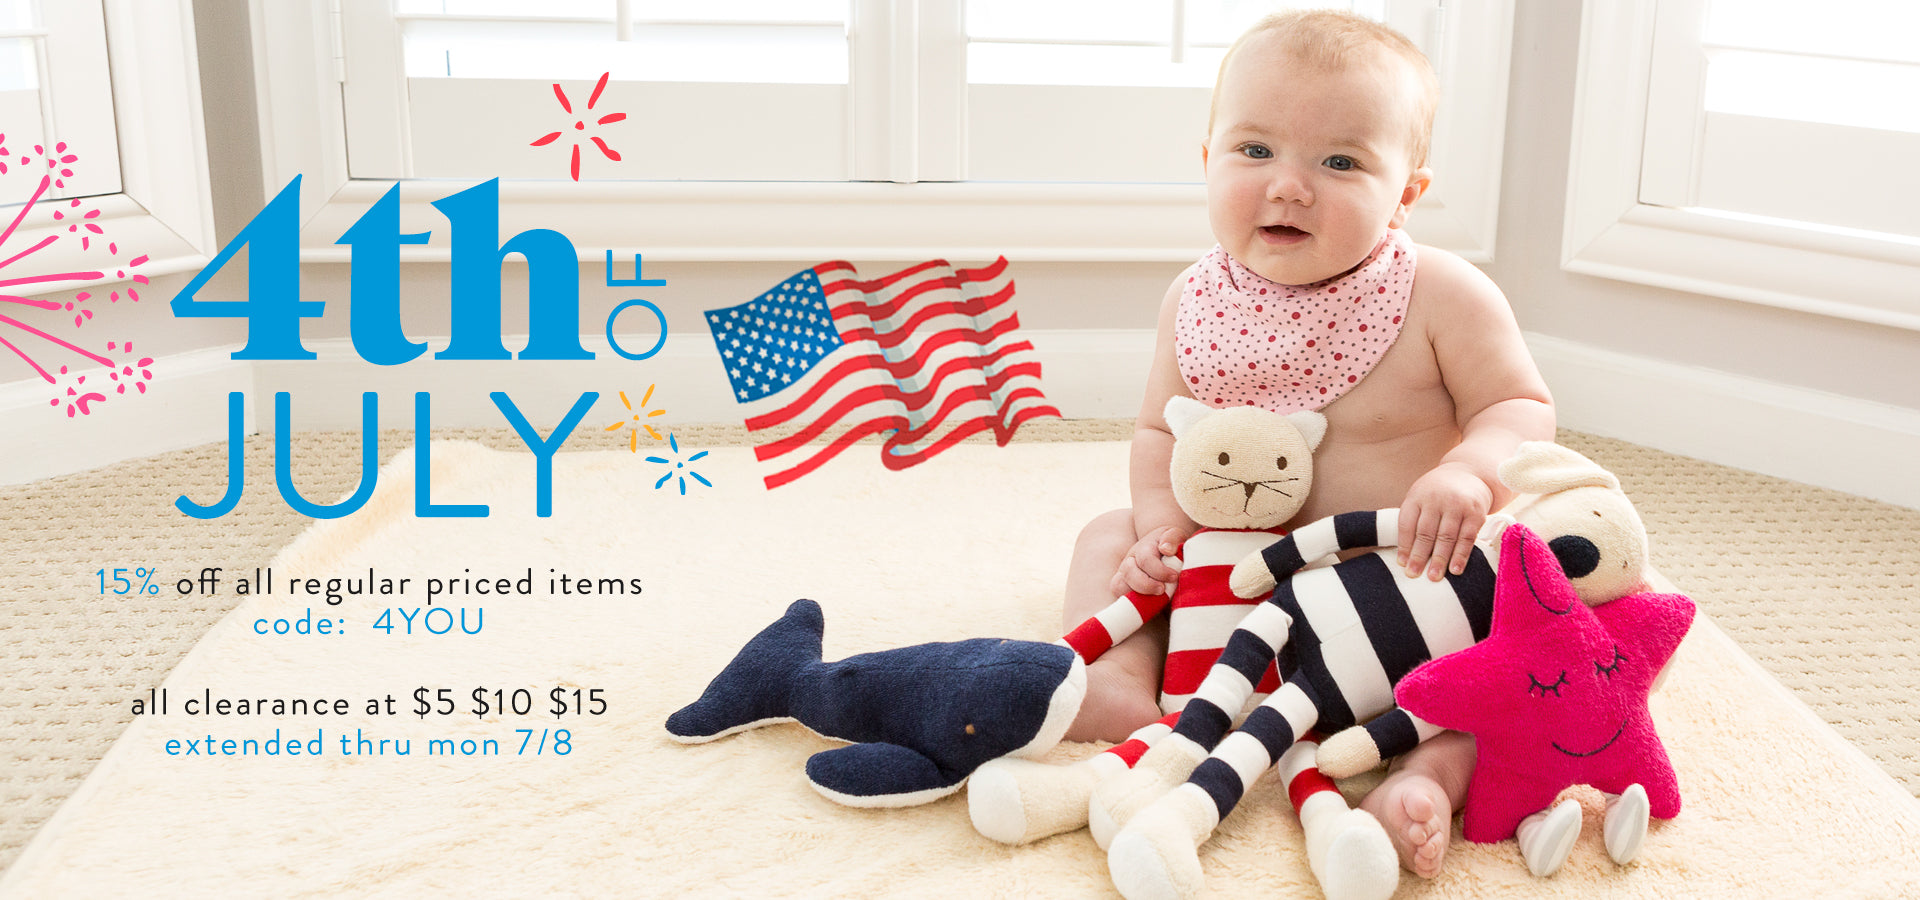 98921cb41053a Under the Nile | Organic Cotton Baby Clothes, Toys & Accessories